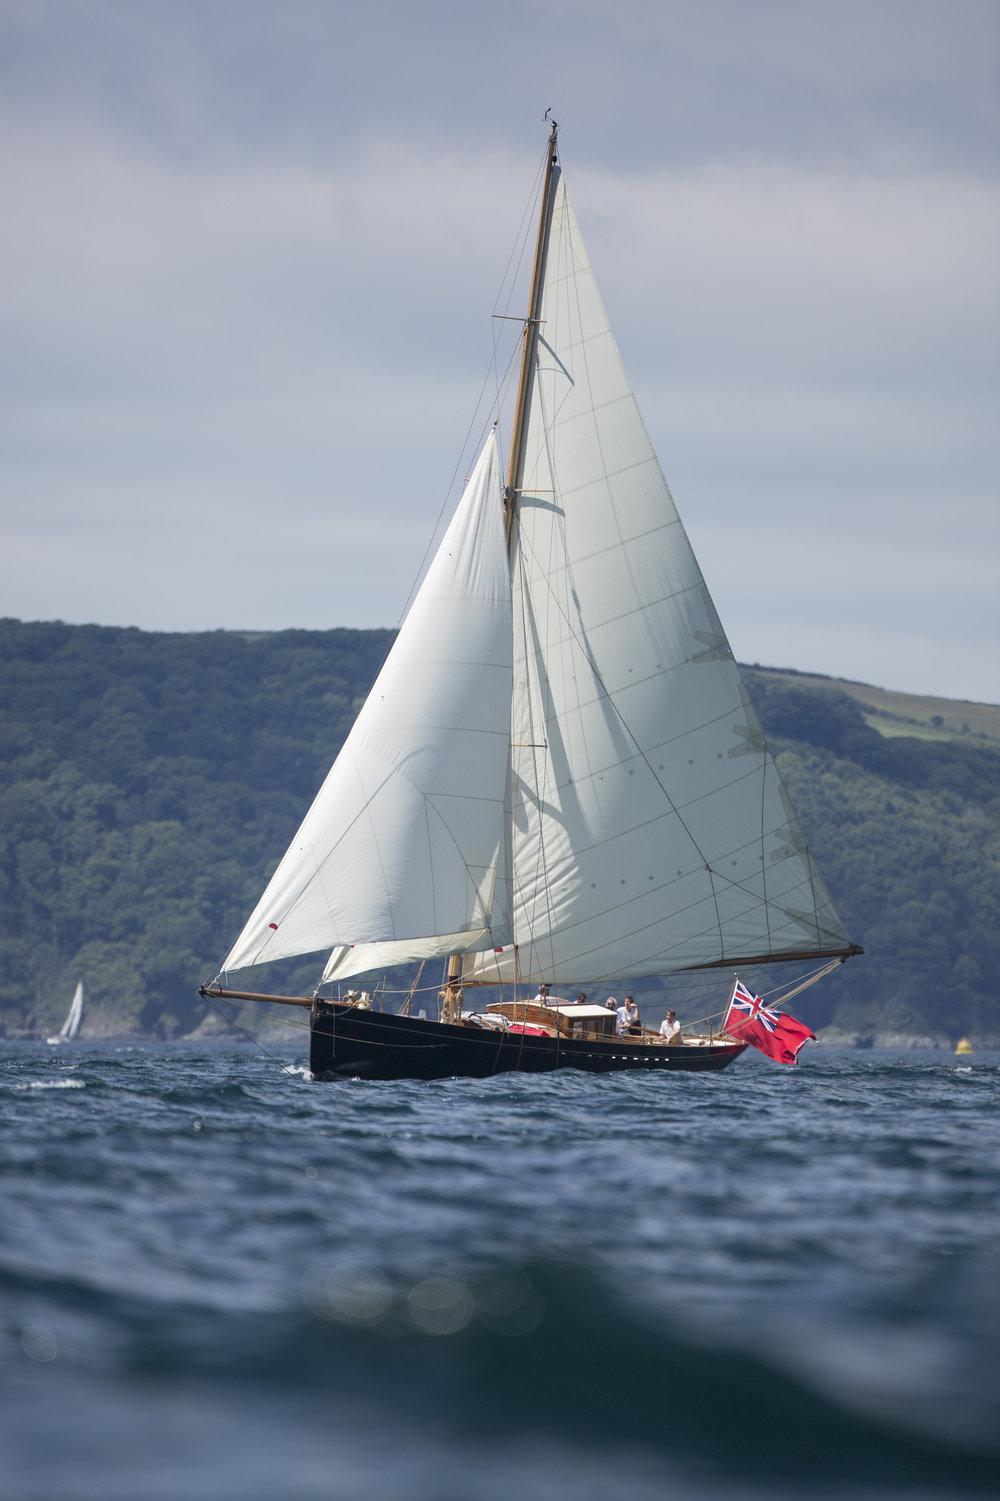 'Bonaventure of Salcombe' under sail © Mark Lloyd